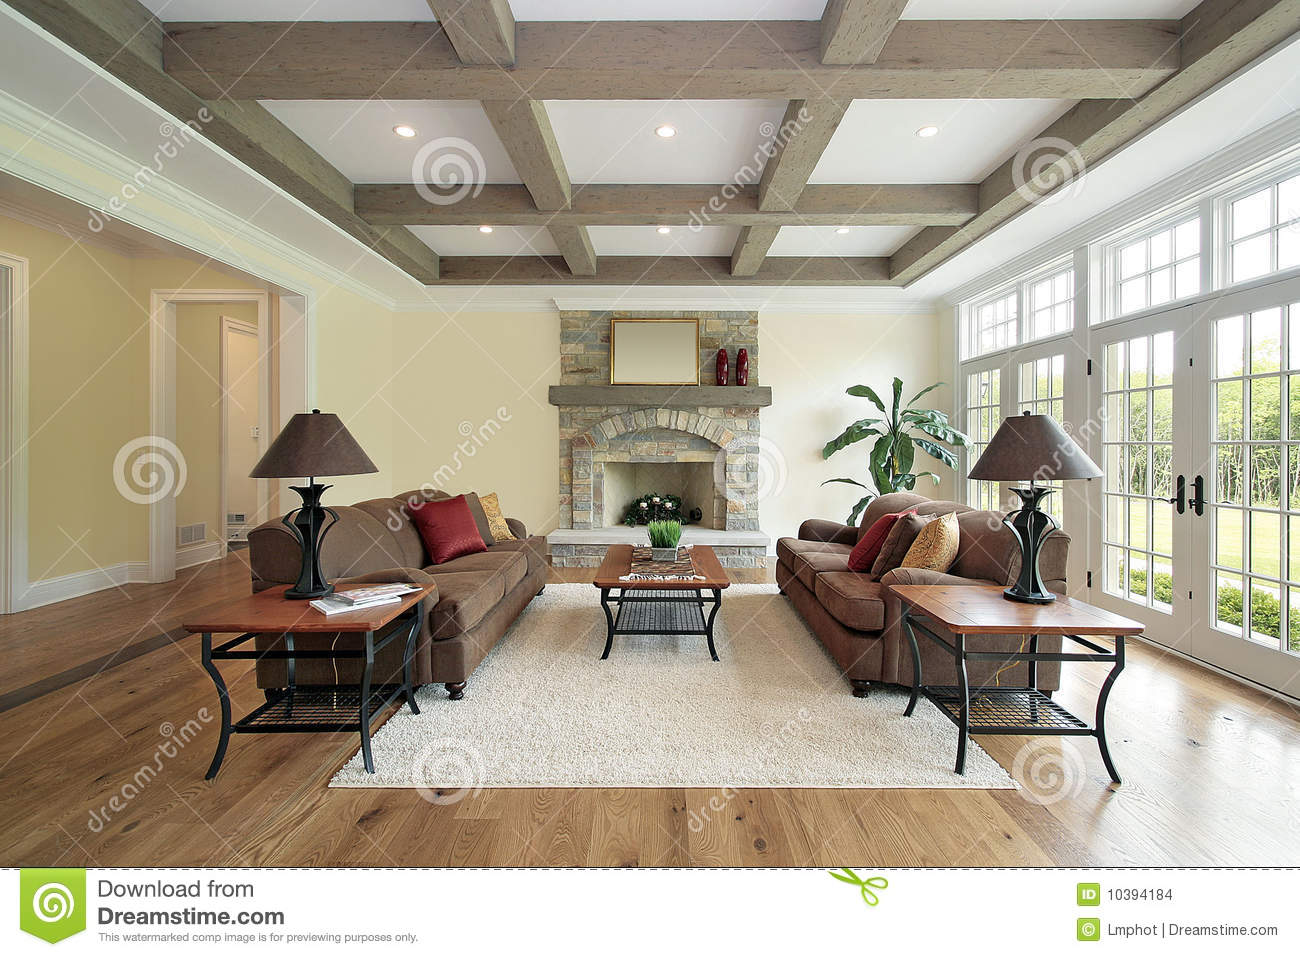 Family Room With Wood Ceiling Beams Stock Photo - Image: 10394184